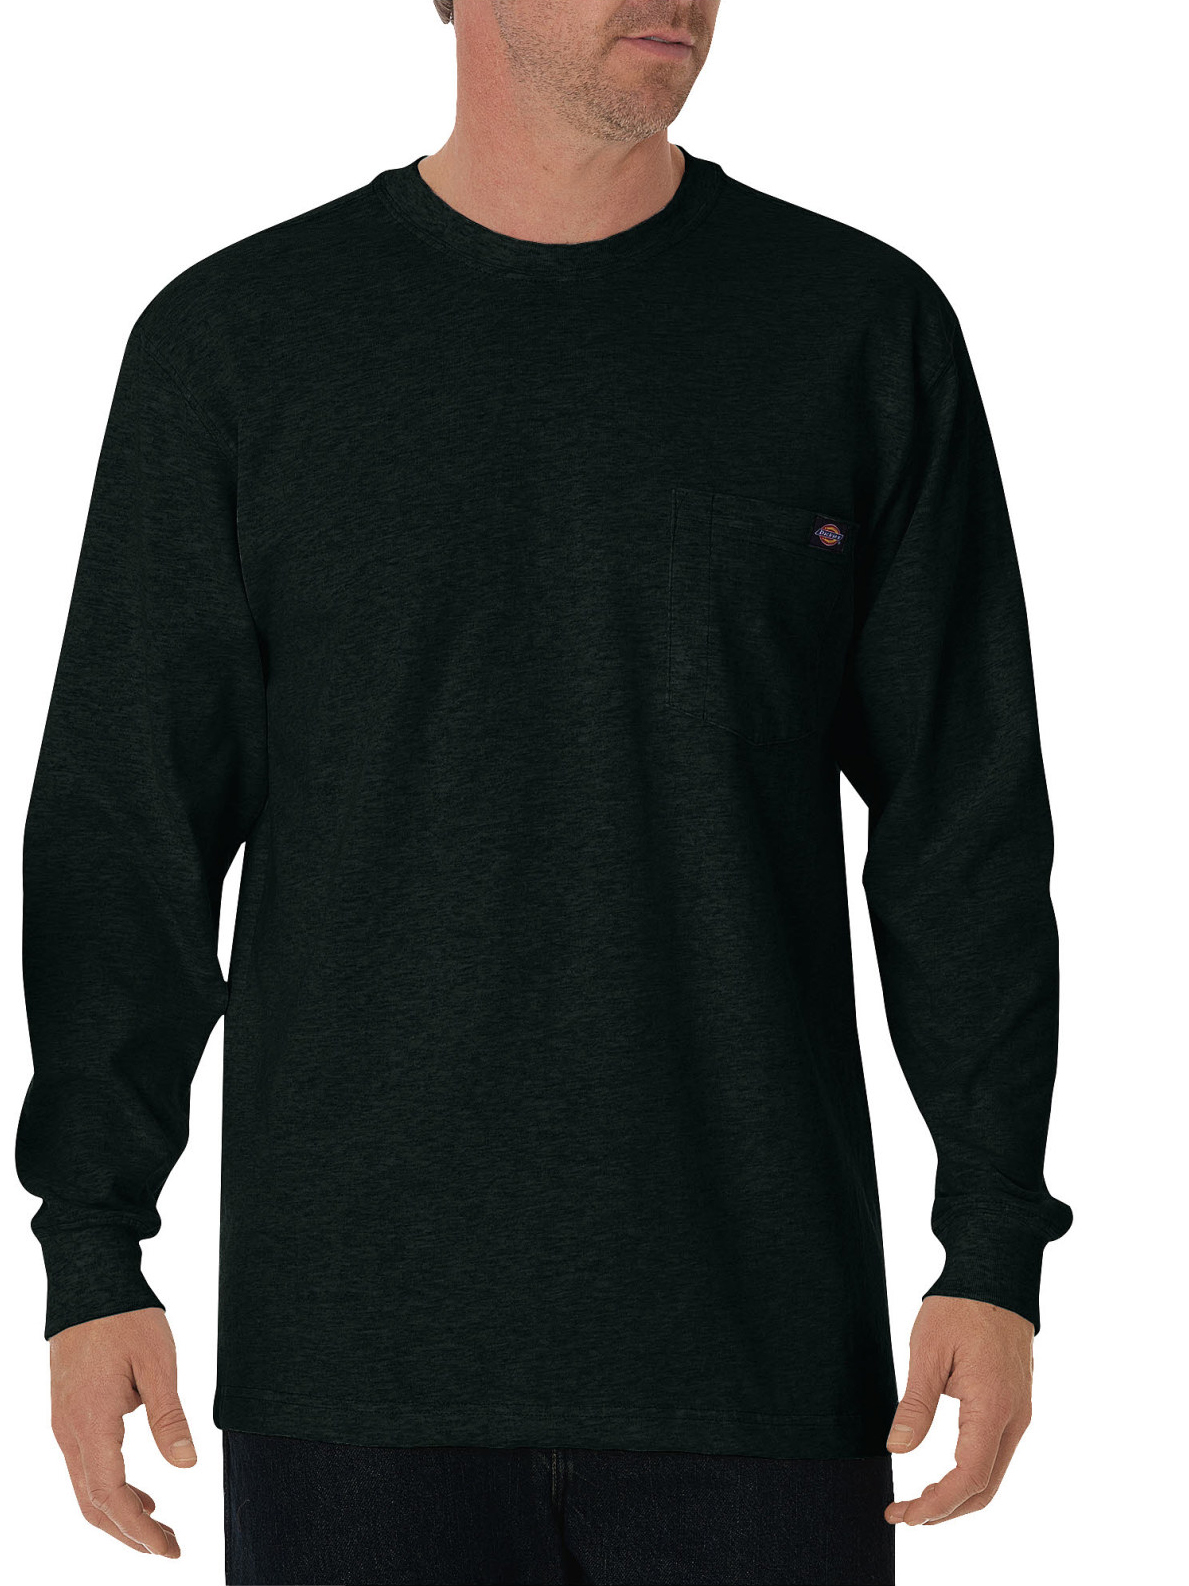 Big and Tall Men's Long Sleeve Heavyweight Crew Neck Tee